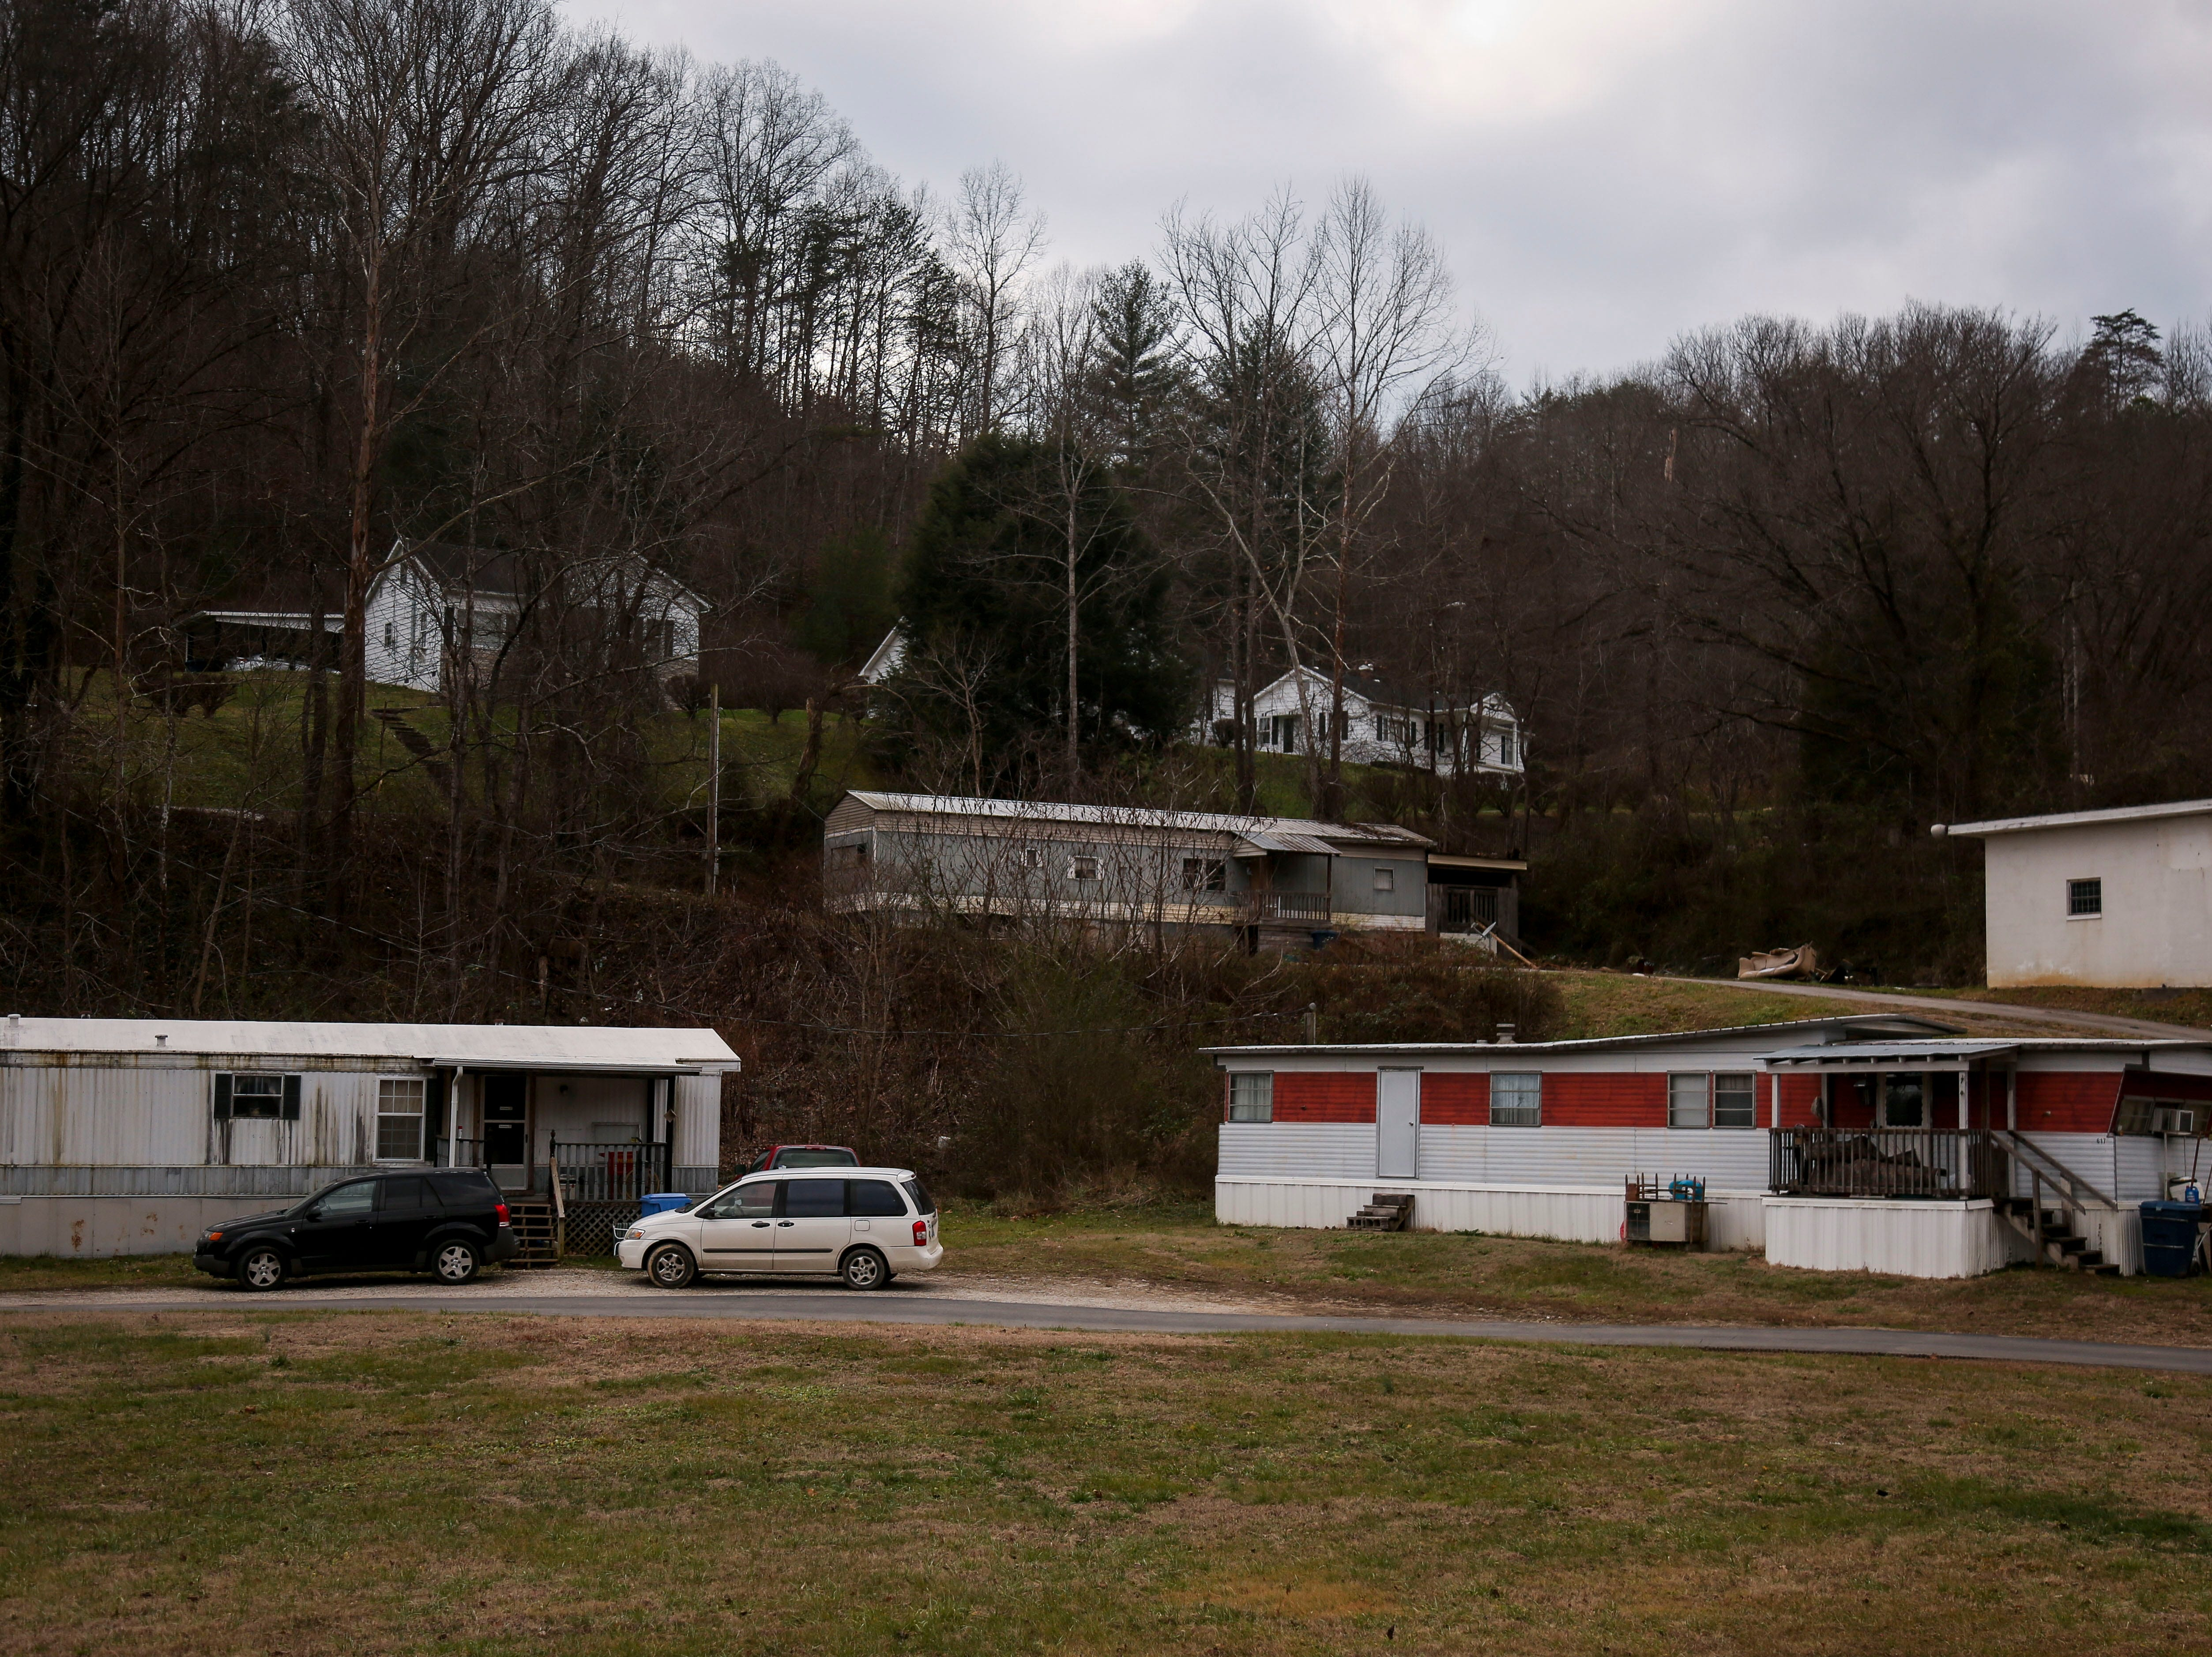 Trailer homes in Beatyville, Ky. on Jan. 9, 2019. Three Forks Regional Jail, in Lee County, was under quarantine in September 2018 due to Hepatitis A.